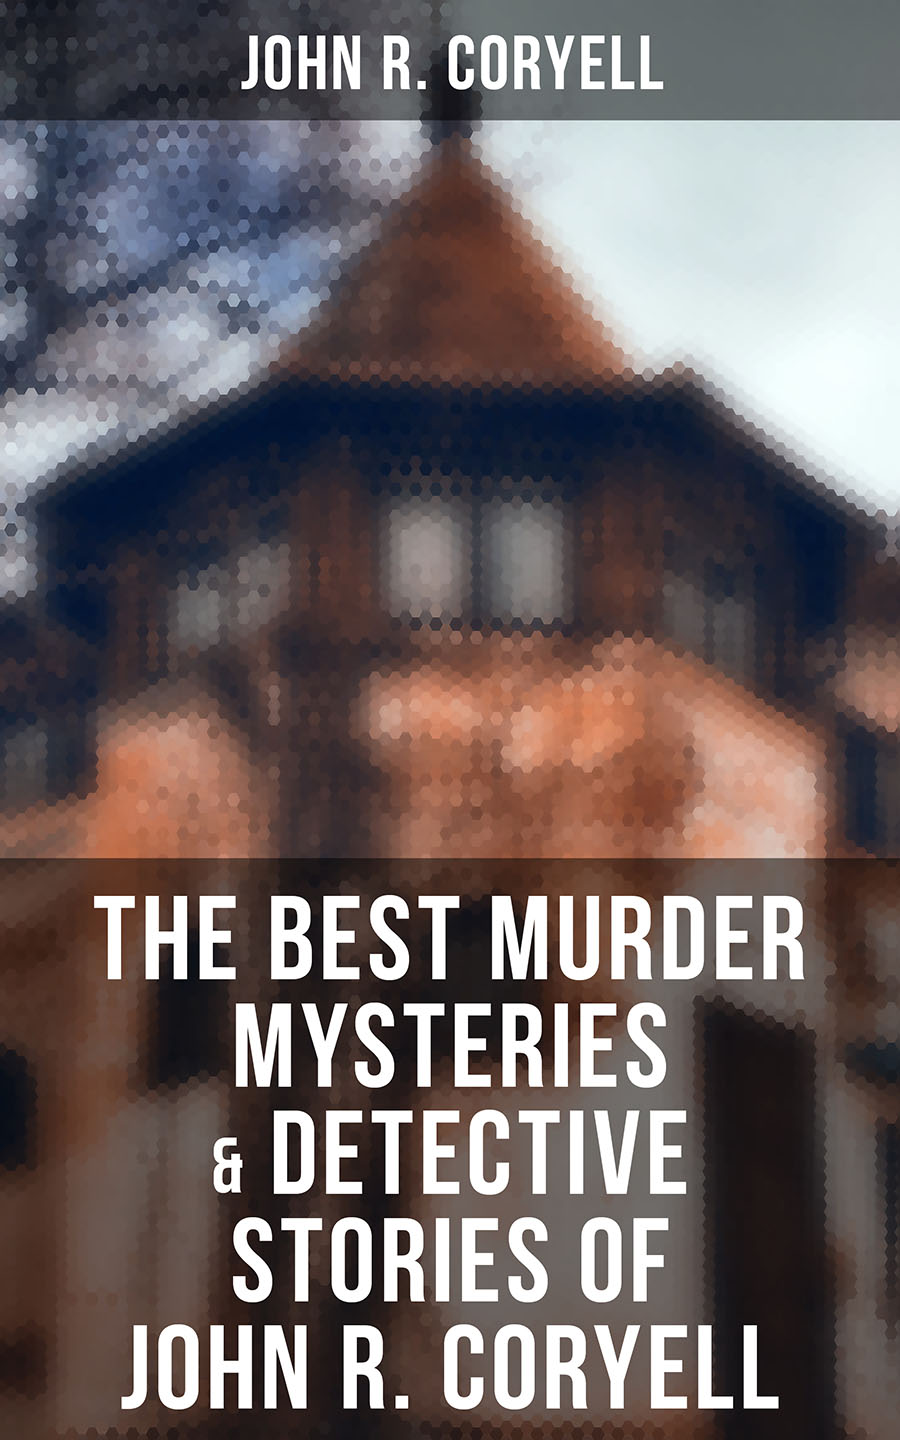 John R. Coryell JOHN R. CORYELL Ultimate Collection: Murder Mysteries, Thrillers & Detective Stories (Including Complete Nick Carter Series) john levine r unix for dummies